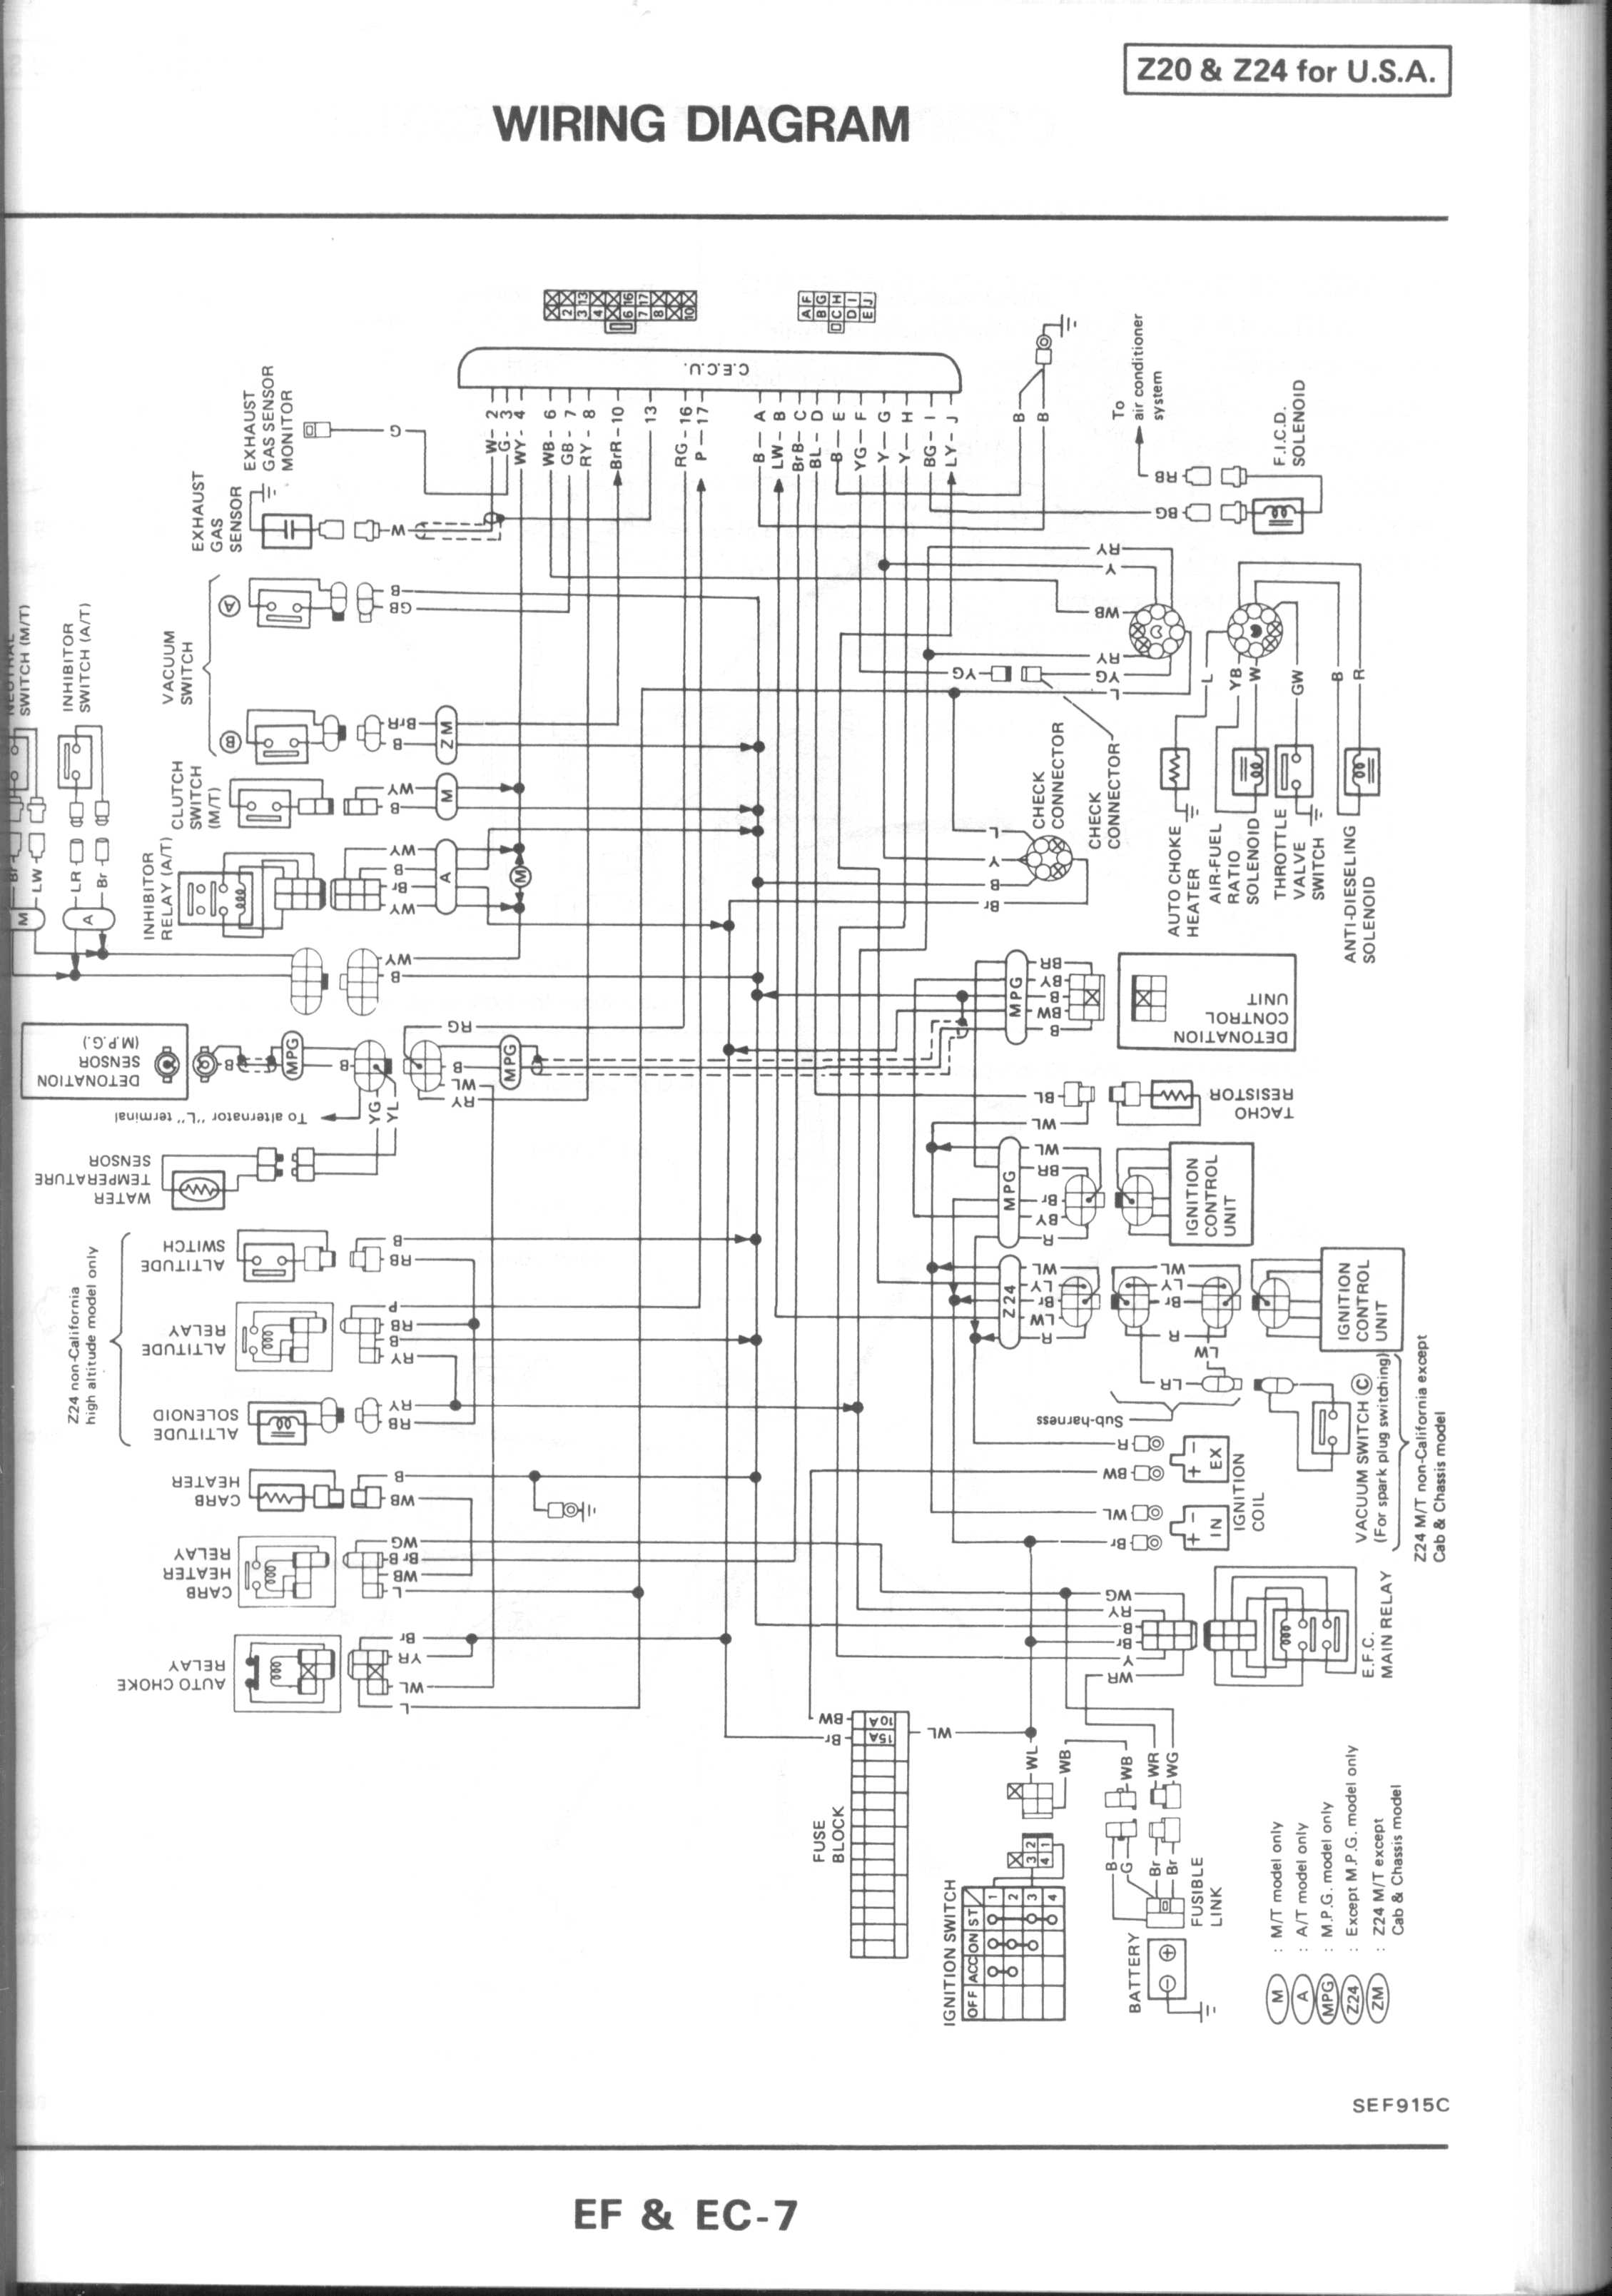 720_z24_ecu_wiring nissan nut Wiring Harness Diagram at fashall.co